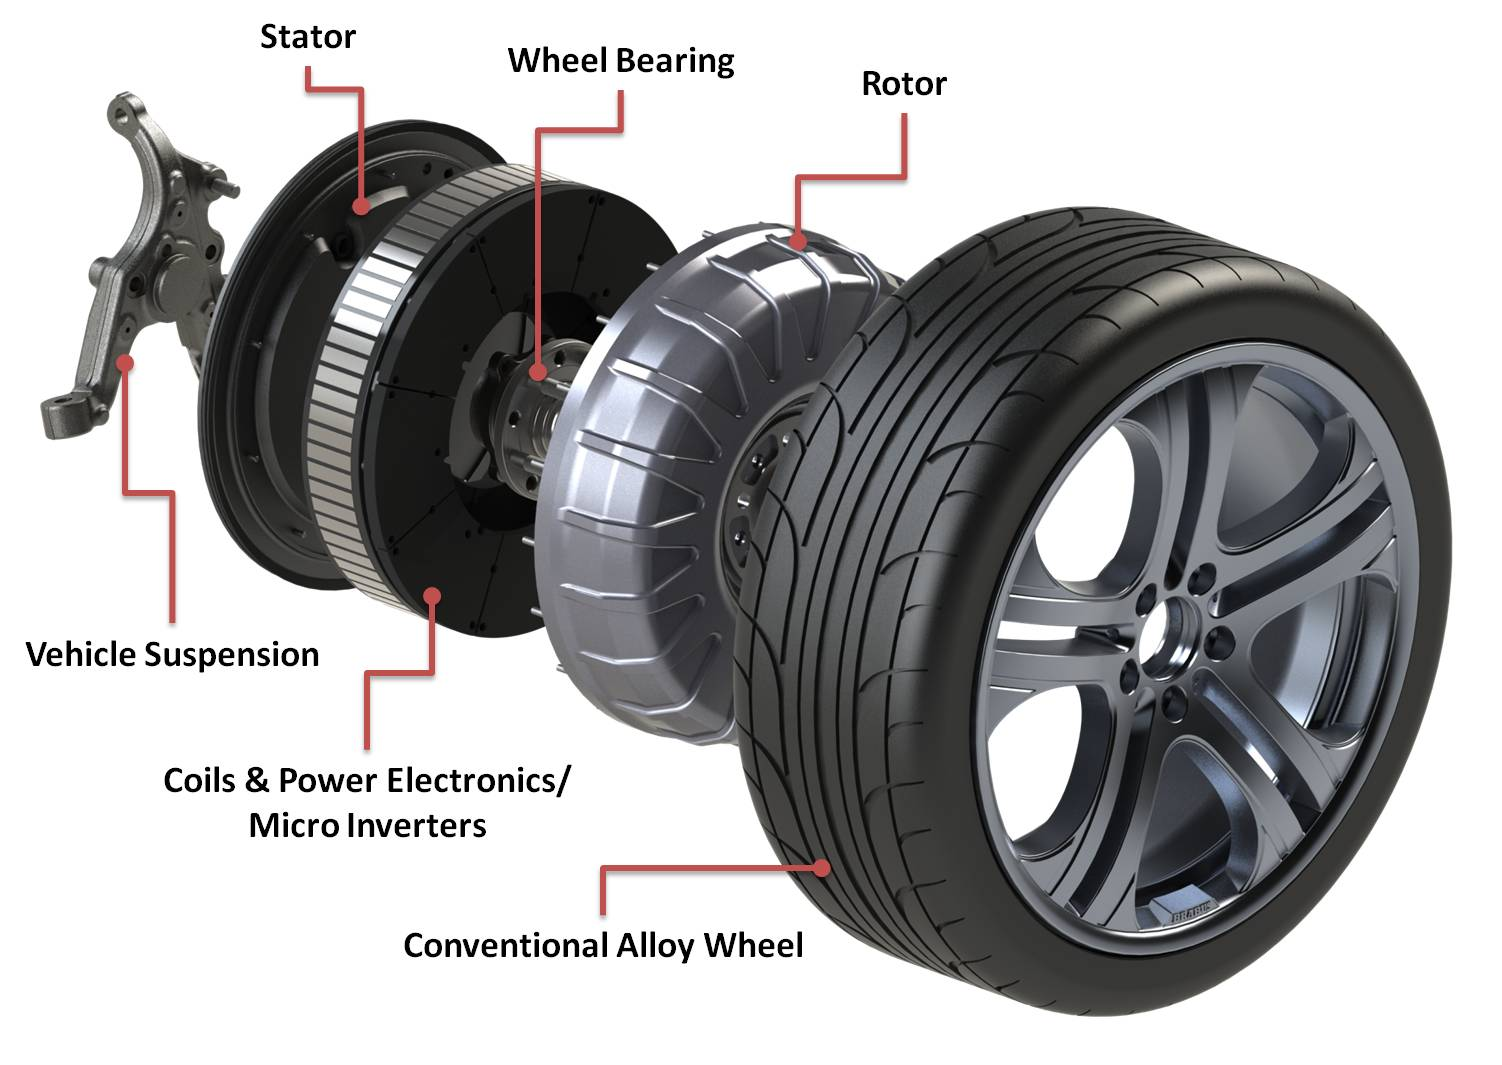 Protean Electric In-Wheel Electric Motors are Production-Ready - The Green Optimistic